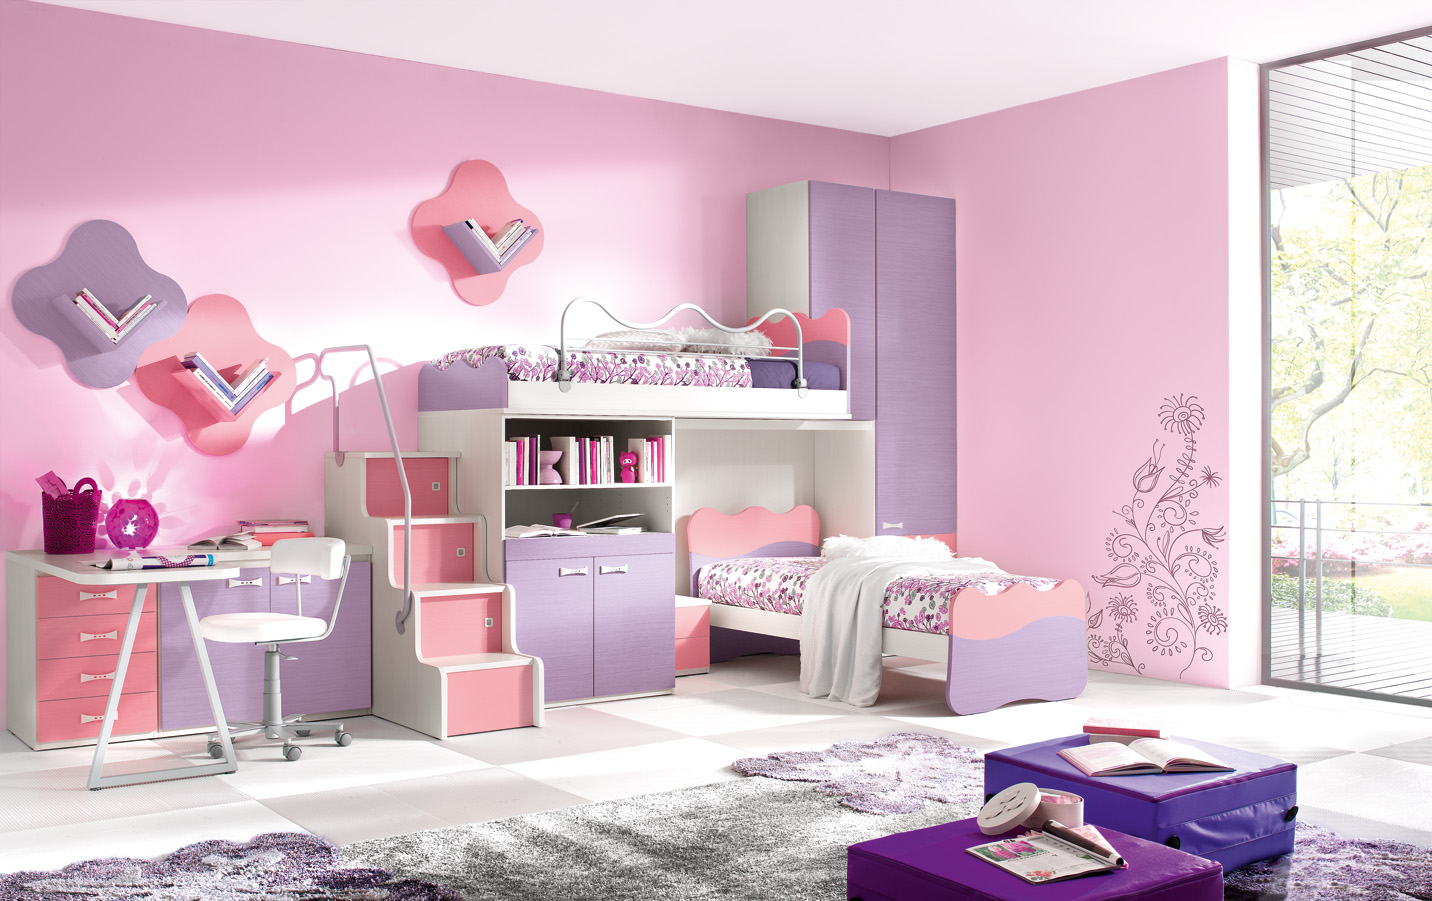 Decorate Cute Room Ideas with Lovely Bunk Bed and Stylish Study Desk on White Flooring